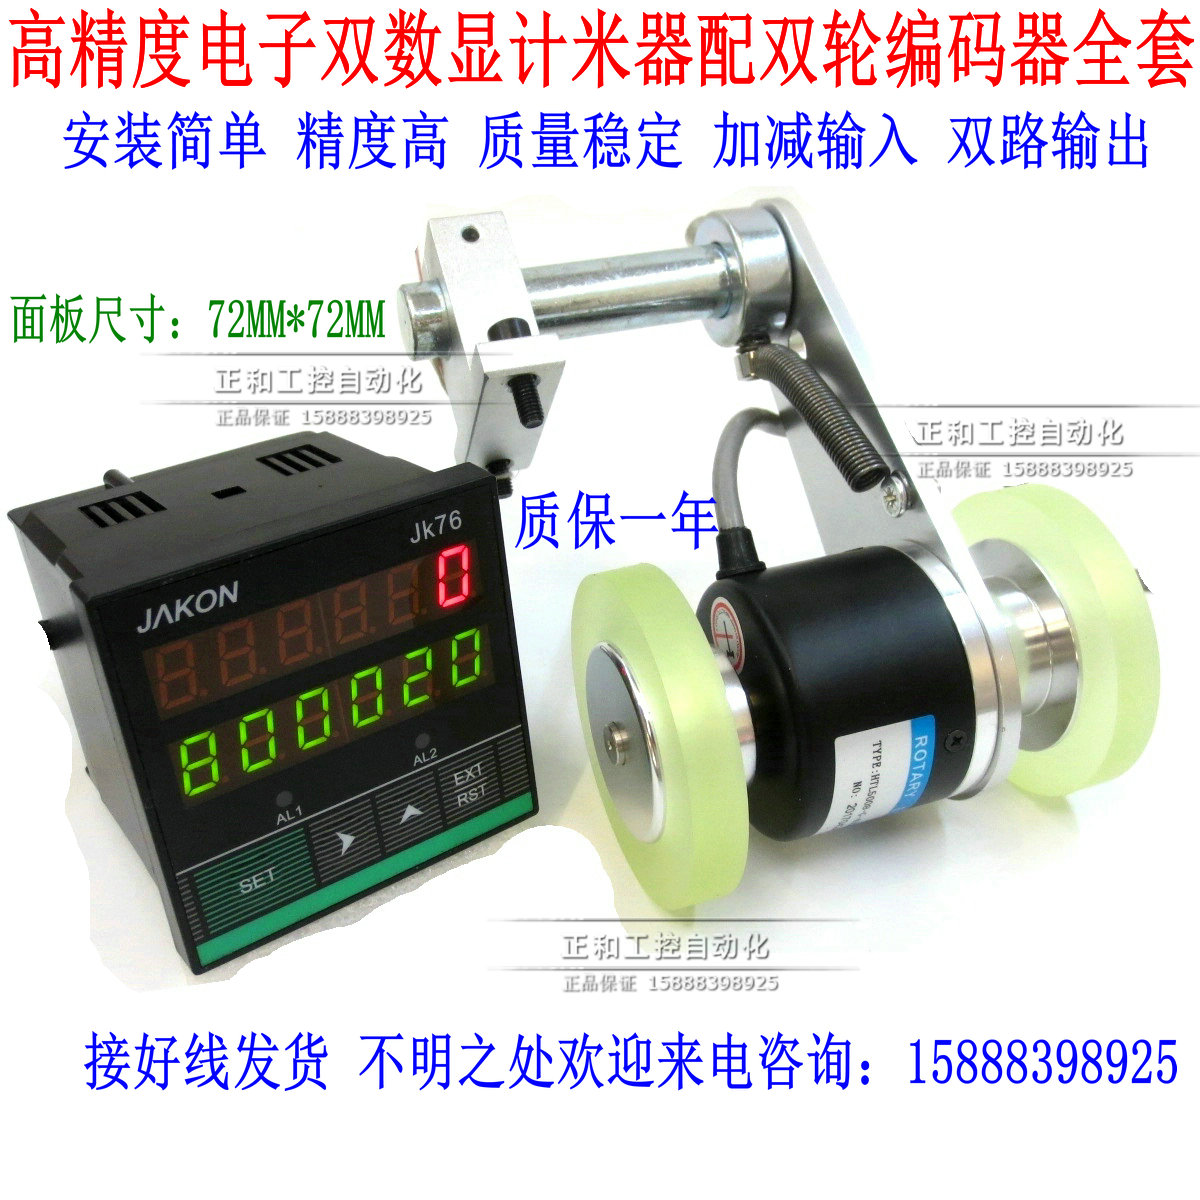 Meter Meter Intelligent Electronic Digital Display Meter Record Code Table Roller Type High Precision Meter can add and subtract electronic digital display counter meter meter set